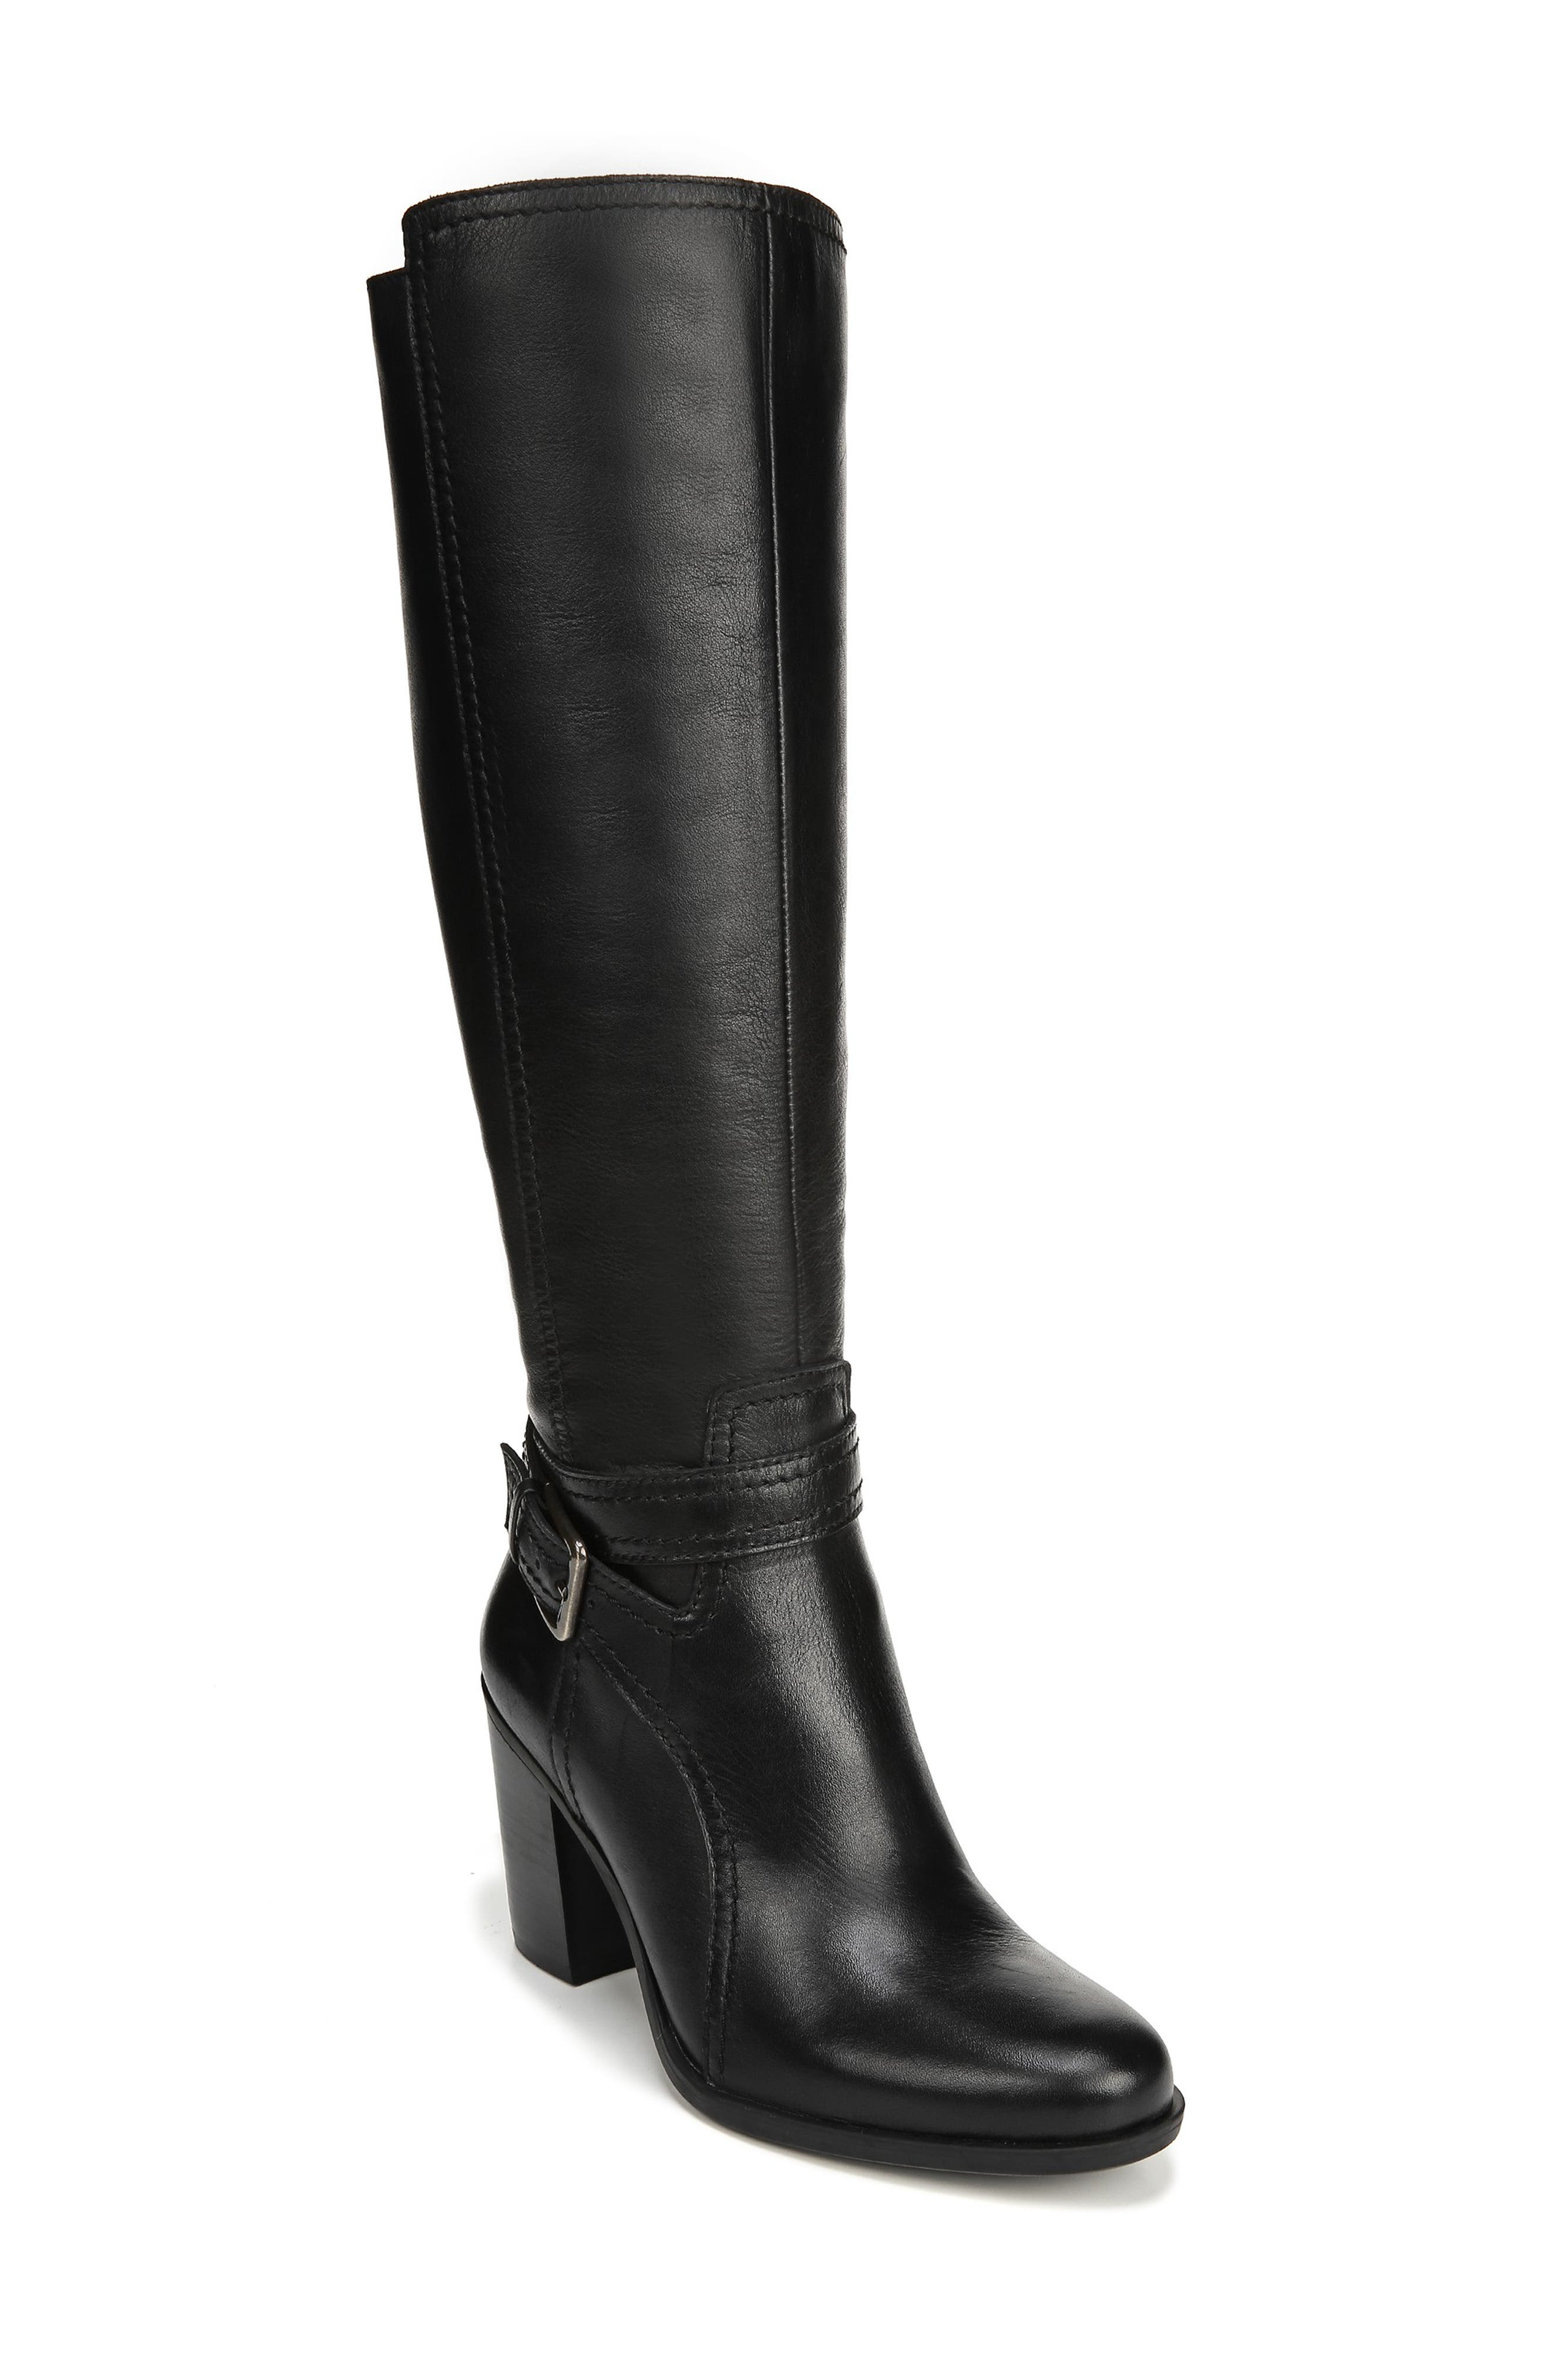 NATURALIZER, Kelsey Knee High Boot, Main thumbnail 1, color, BLACK LEATHER